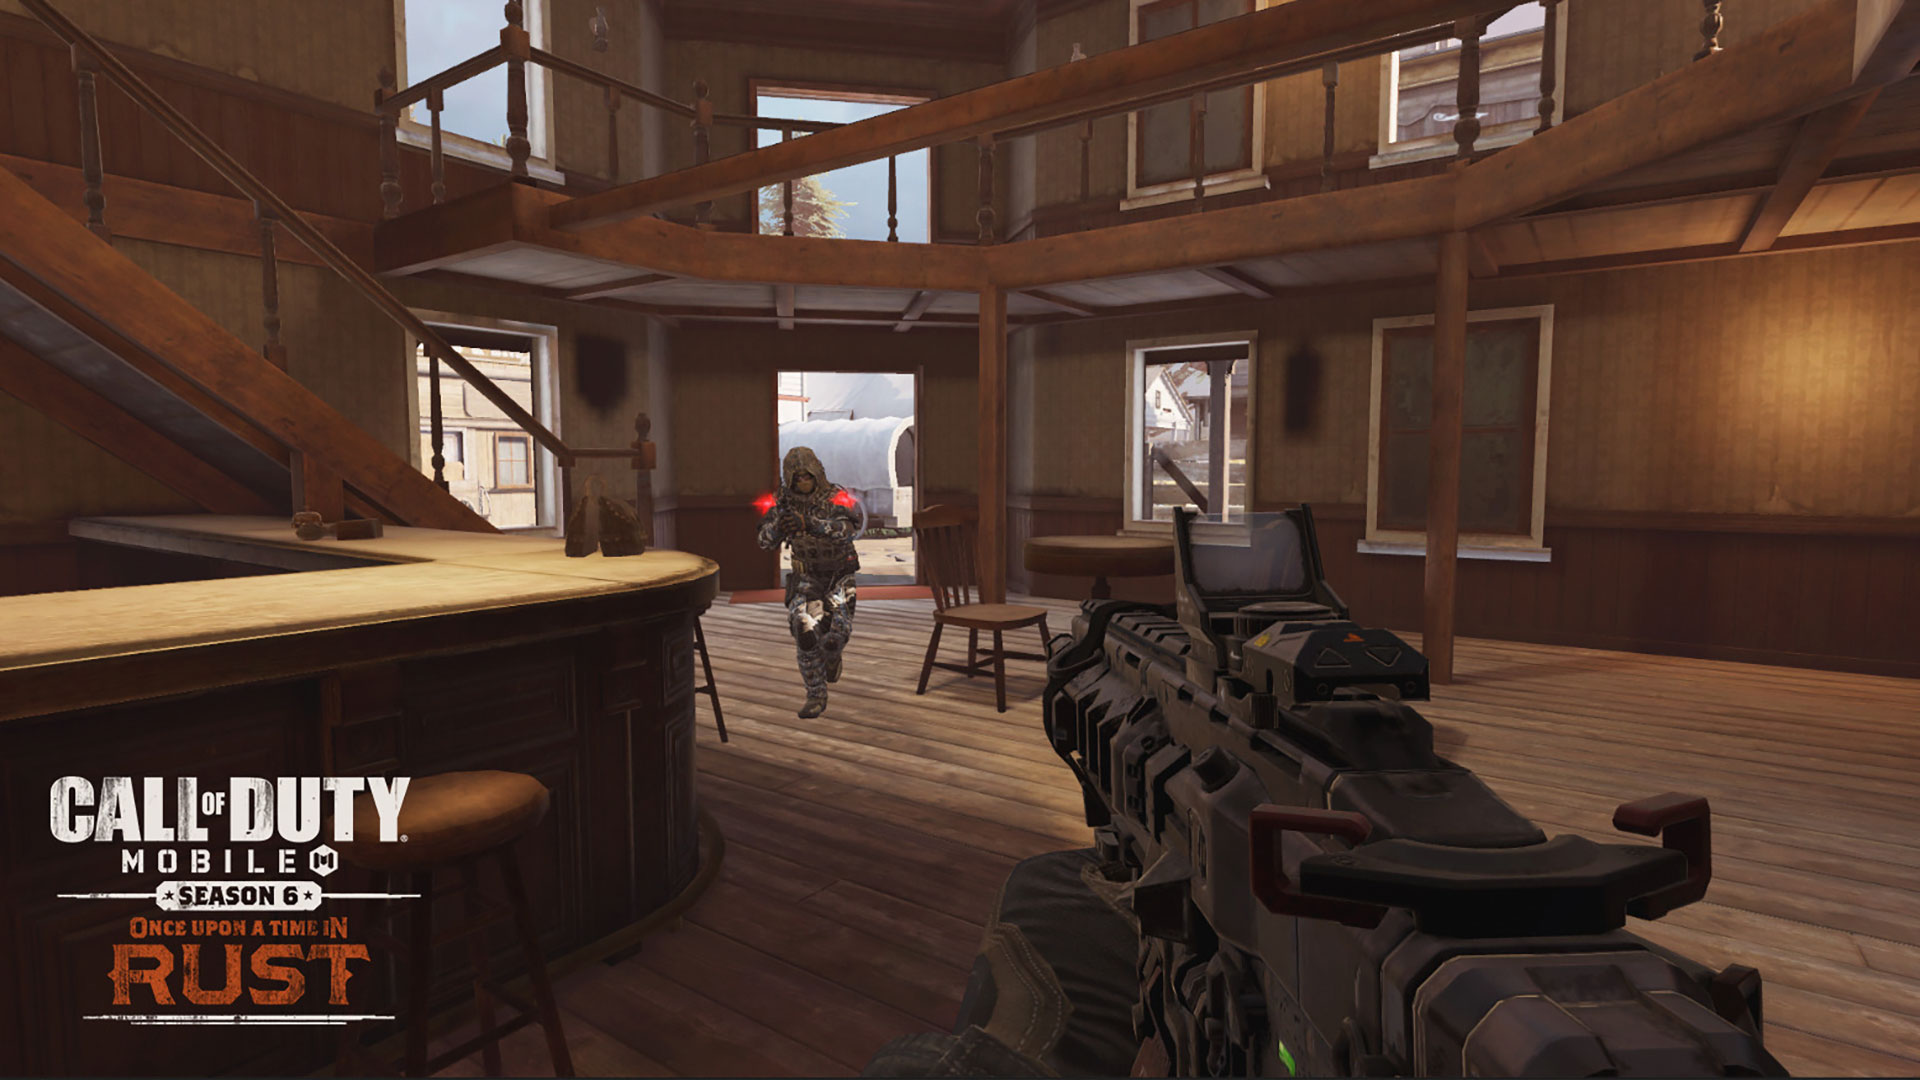 This Week in Call of Duty® - May 26 - Image 8